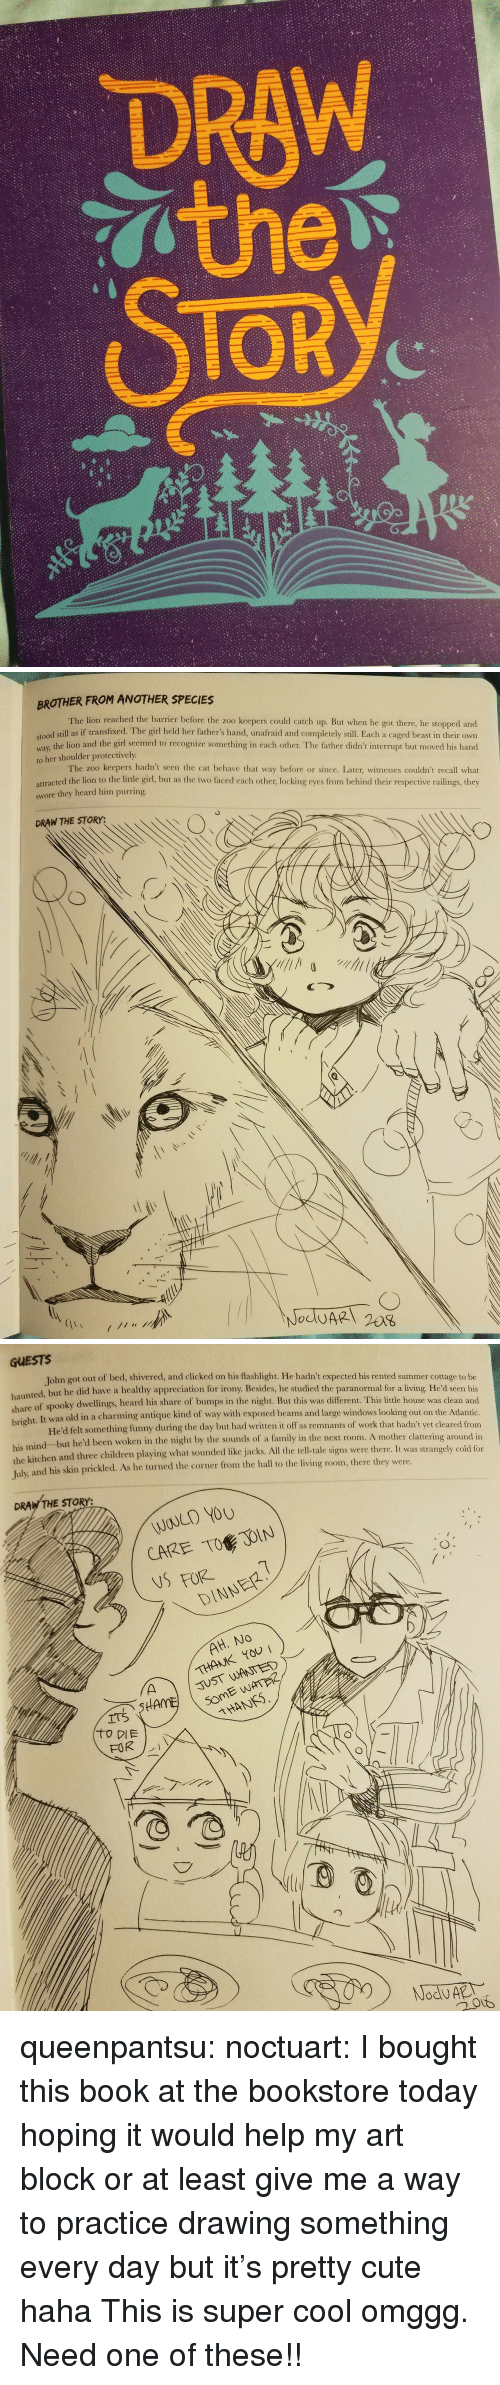 Children, Cute, and Family: DRAW  TOR  2/   BROTHER FROM ANOTHER SPECIES  The lion reached the barrier before the zoo keepers could catch up. But when he got there, he stopped and  dl still as if transfixed. The girl held her father's hand, unafraid and completely still. Each a caged beast in their own  way, the lion and the girl seemed to recognize something in cach other. The father didn't interrupt but moved his hand  to her shoulder protectively  The zoo keepers hadn't seen the cat behave that way before or since. Later, witnesses couldn't recall what  attracted the lion to the little girl, but as the two faced each other, locking eyes from behind their respective railings, they  swore they heard him purring  DRAW THE STORY:   GUESTS  John got out of bed, shivered, and clicked on his flashlight. He hadn't expected his rented summer cottage to be  nted, but he did have a healthy appreciation for irony. Besides, he studied the paranormal for a living. He'd seen his  share  of spooky dwellings, heard his share of bumps in the night. But this was different. This little house was clean and  It was old in a charming antique kind of way with exposed beams and large windows looking out on the Atlantic  He'd felt something funny during the day but had written it off as remnants of work that hadn't yet cleared from  right.  his mind but he'd been woken in the night by the sounds of a family in the next room. A mother  the kitchen and three children playing what sounded like jacks. All the tell-tale signs were there. It was stran  Tulx  and his skin prickled. As he turned the corner from the hall to the living room, there they were.  clattering around in  gely cold for  DRAW THE STORY:  WOULD YOU  CARE TO JOIN  NSFORE  DINNER  THANK YOU  JUST WANTED  THANS queenpantsu:  noctuart:  I bought this book at the bookstore today hoping it would help my art block or at least give me a way to practice drawing something every day but it's pretty cute haha  This is super cool omggg. Need one of these!!